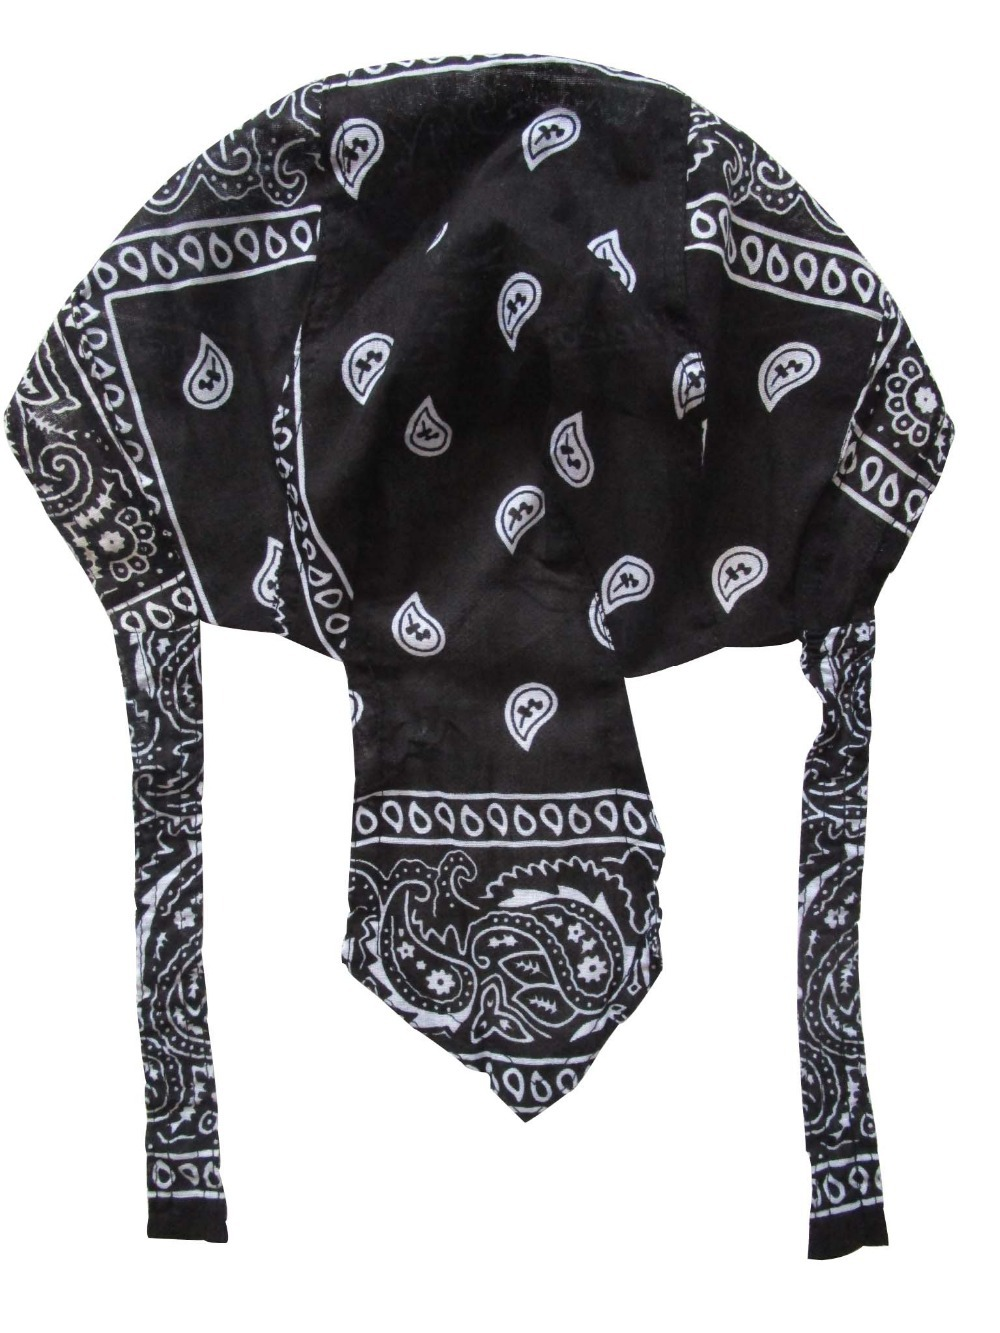 2018 New Men Black Red Paisley Durag Bandanna  Du Rag Scarf Head Rap Tie Down Band Biker Cap